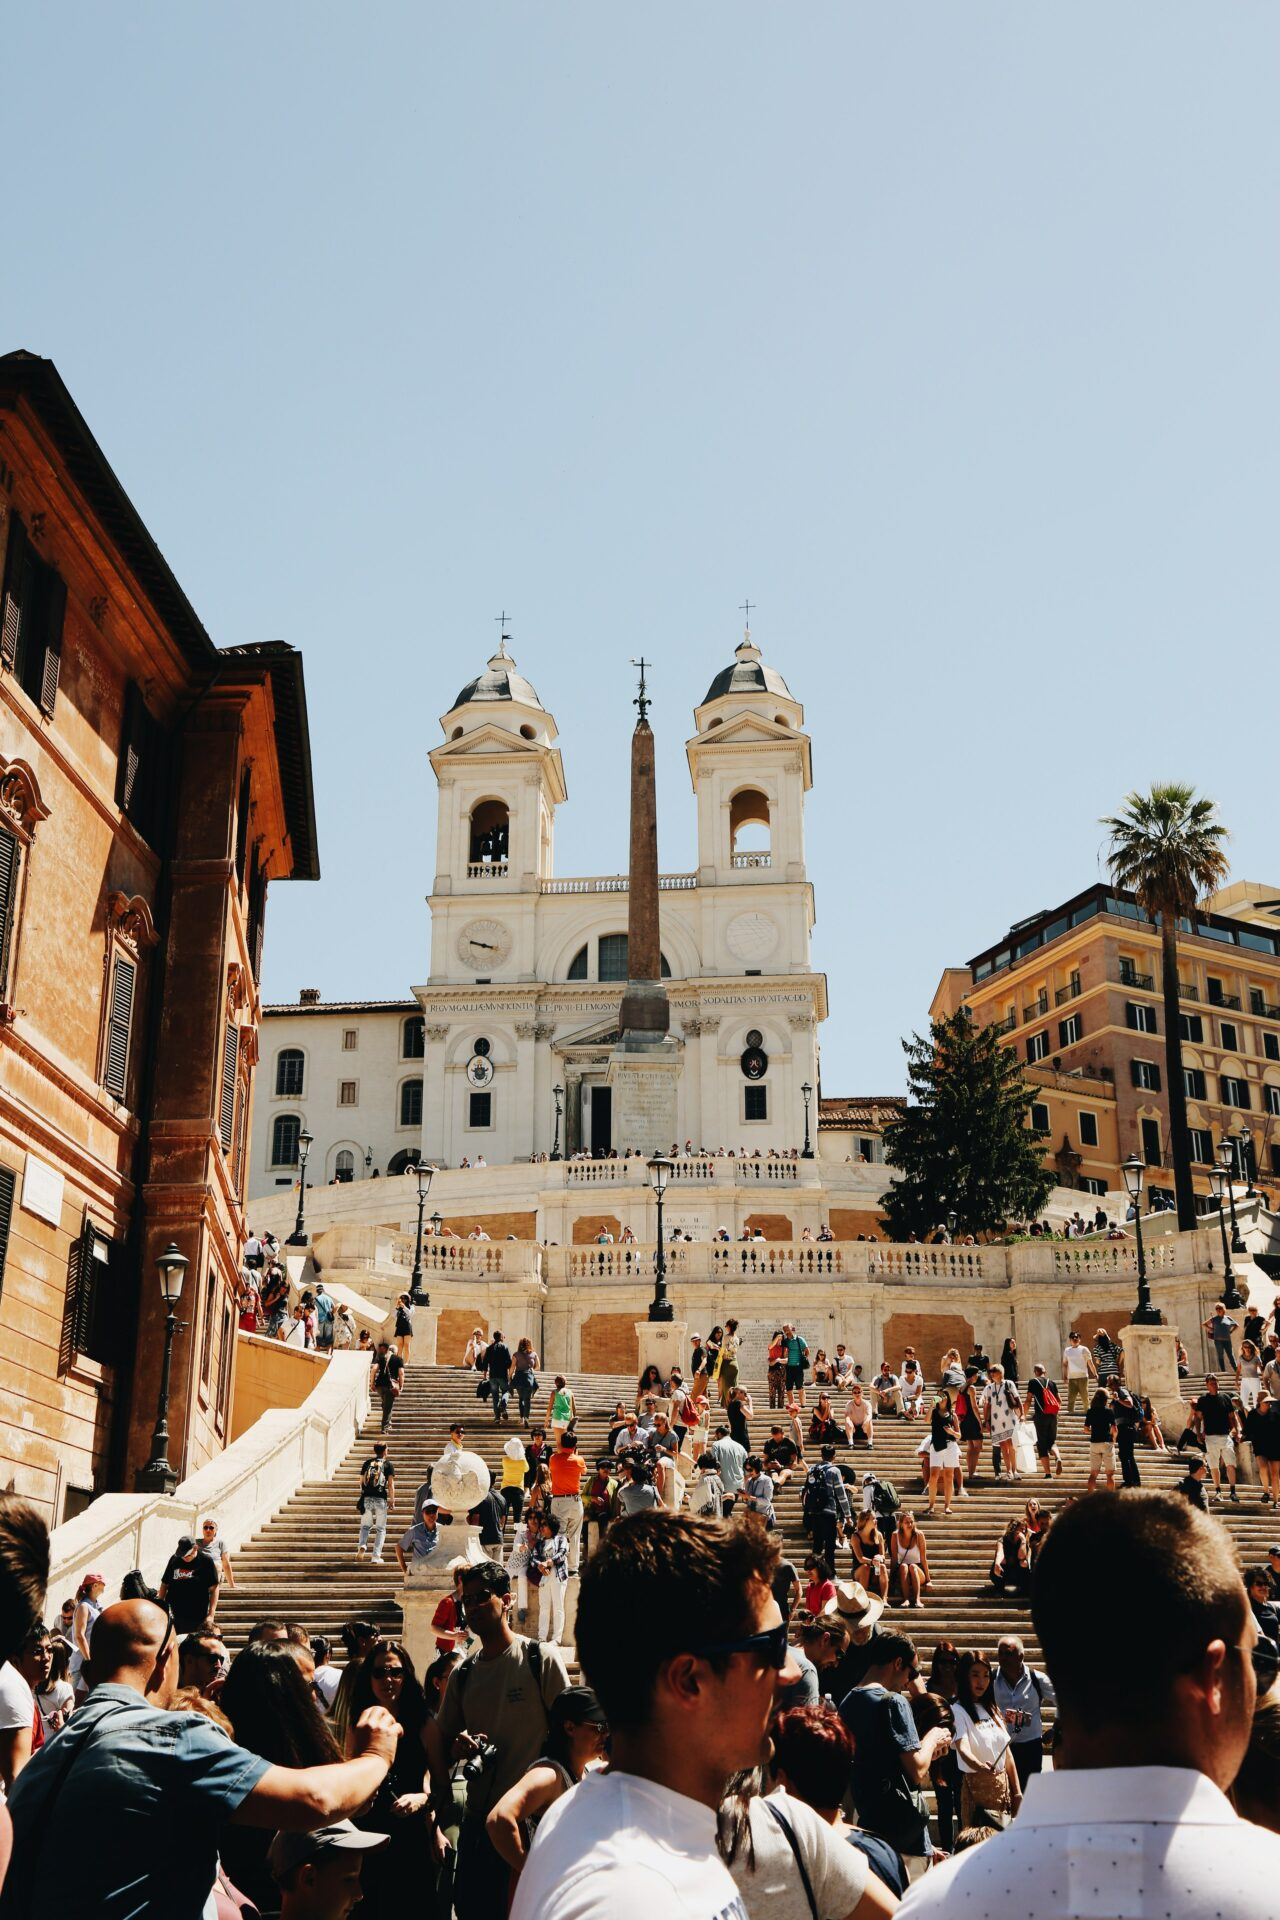 Top 10 Amazing Places You Have to See in Rome 1